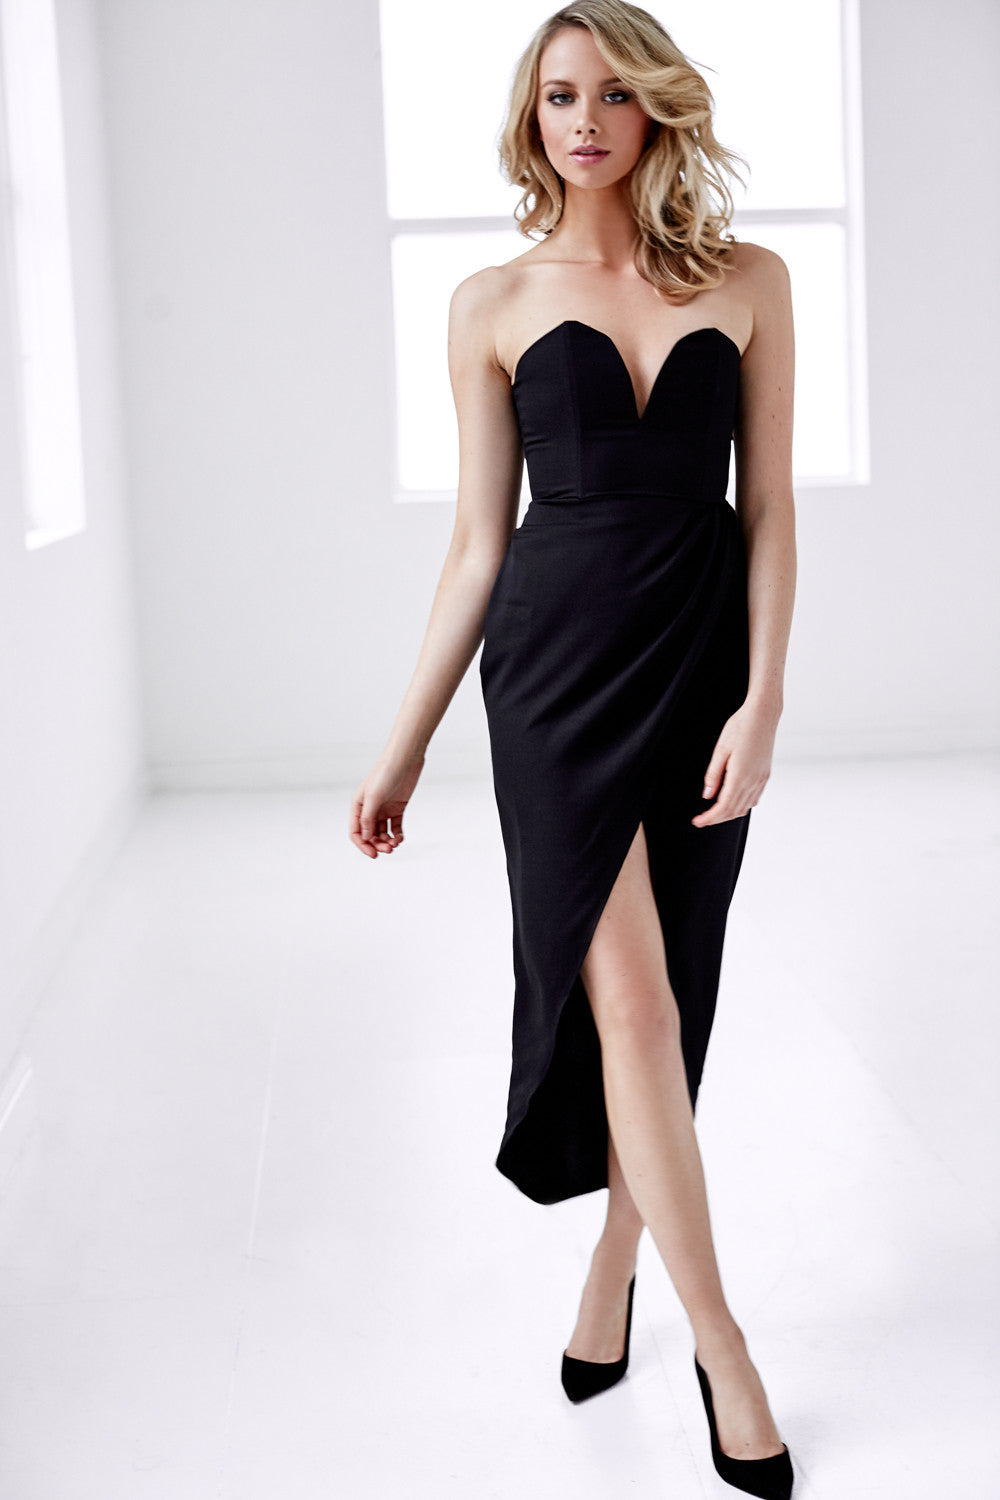 The Endless Nights Dress